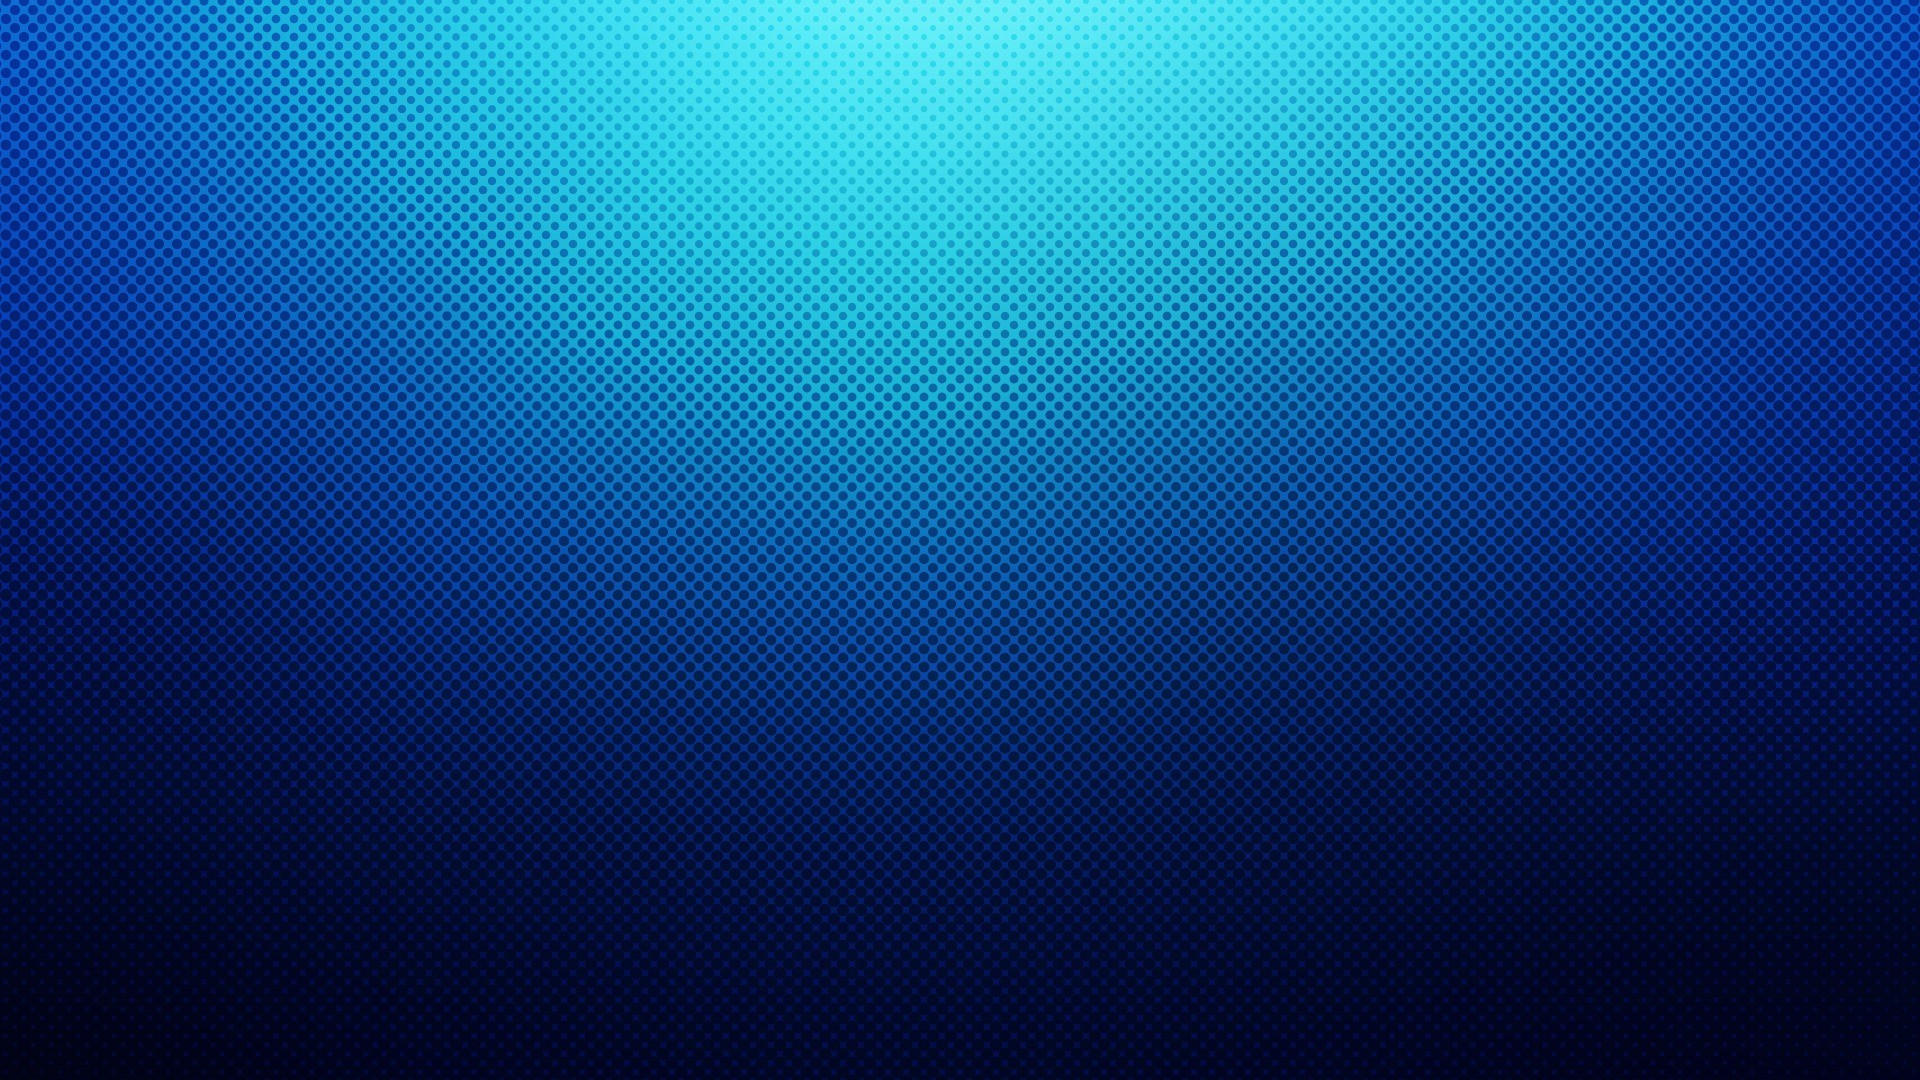 Res: 1920x1080, Loyalty Solutions Nigeria | Backgrounds-blue-gradient-hd-wallpapers -  Loyalty Solutions Nigeria